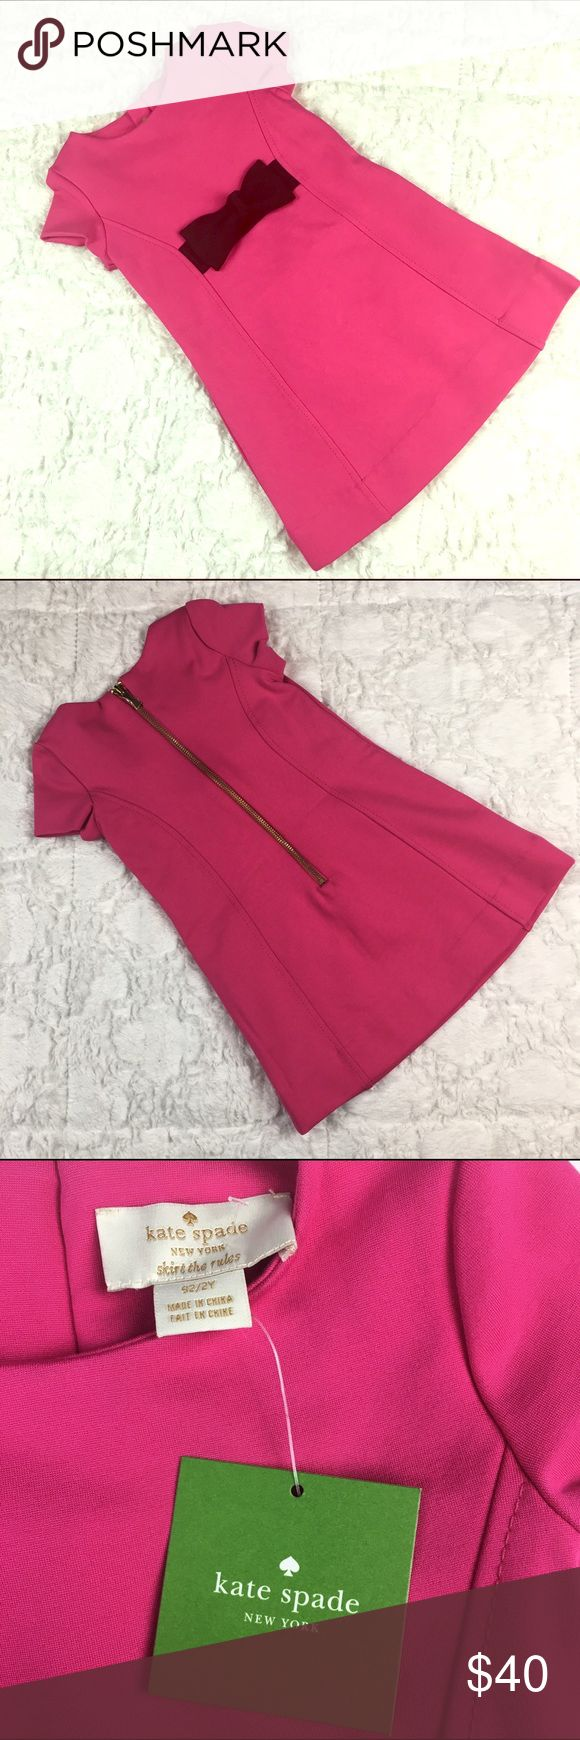 """Kate Spade New York Toddlers' Ponte Pink Bow Dress Kate Spade New York Toddlers' Ponte Pink Bow Dress """"skirt the rules"""" 2Y. Kate Spade New York Kids Ponte Bow Dress jewel neck, sheath dress, Short sleeves with straight hem, Signature bow accent along front waist. kate spade Dresses"""